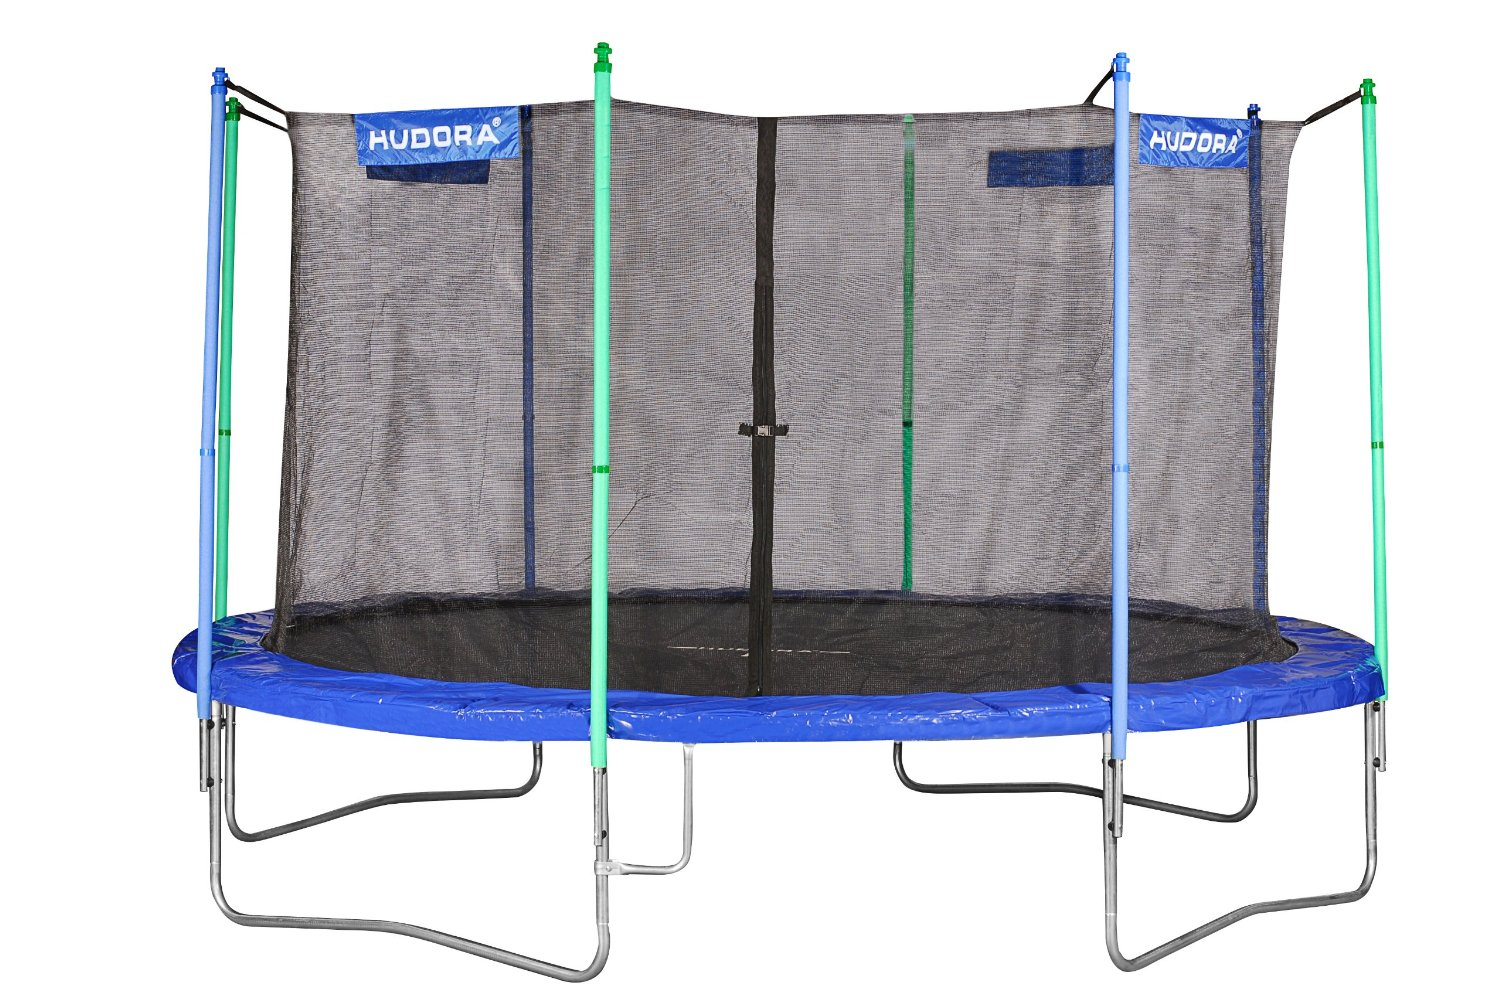 hudora gartentrampolin 305 cm test. Black Bedroom Furniture Sets. Home Design Ideas